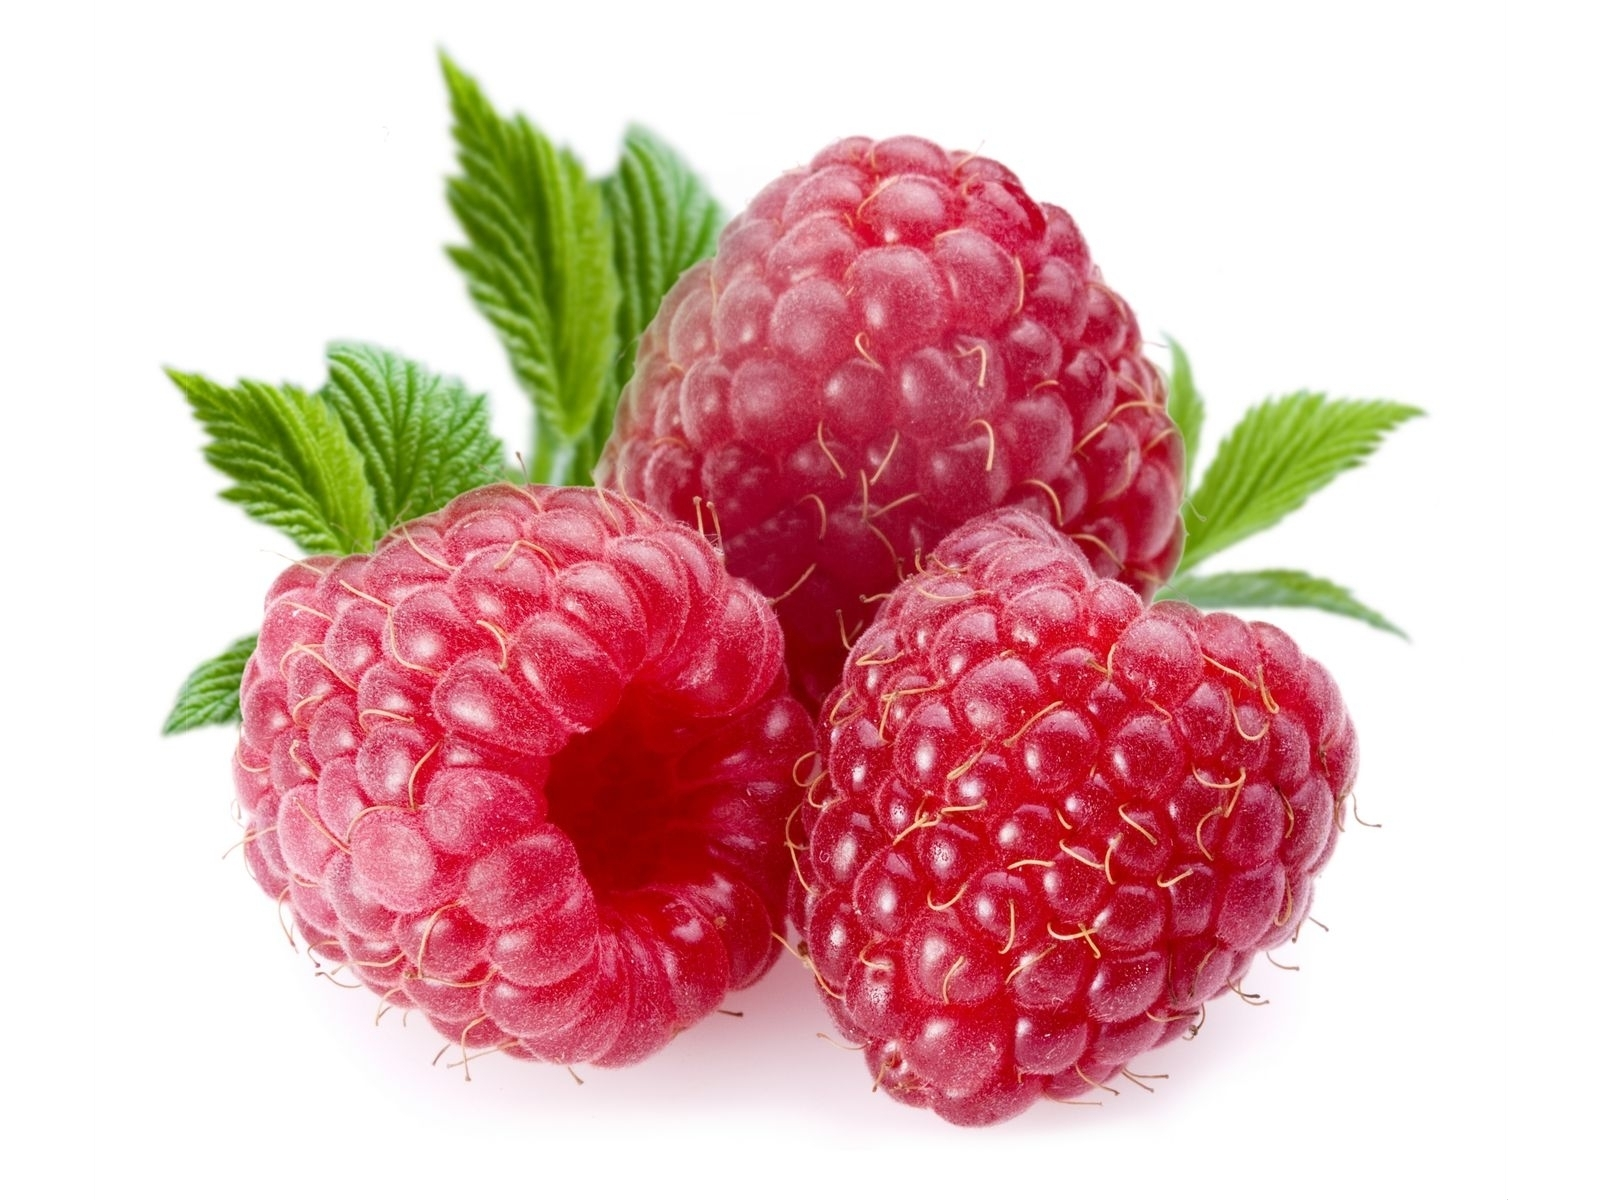 8518 download wallpaper Food, Raspberry, Berries screensavers and pictures for free